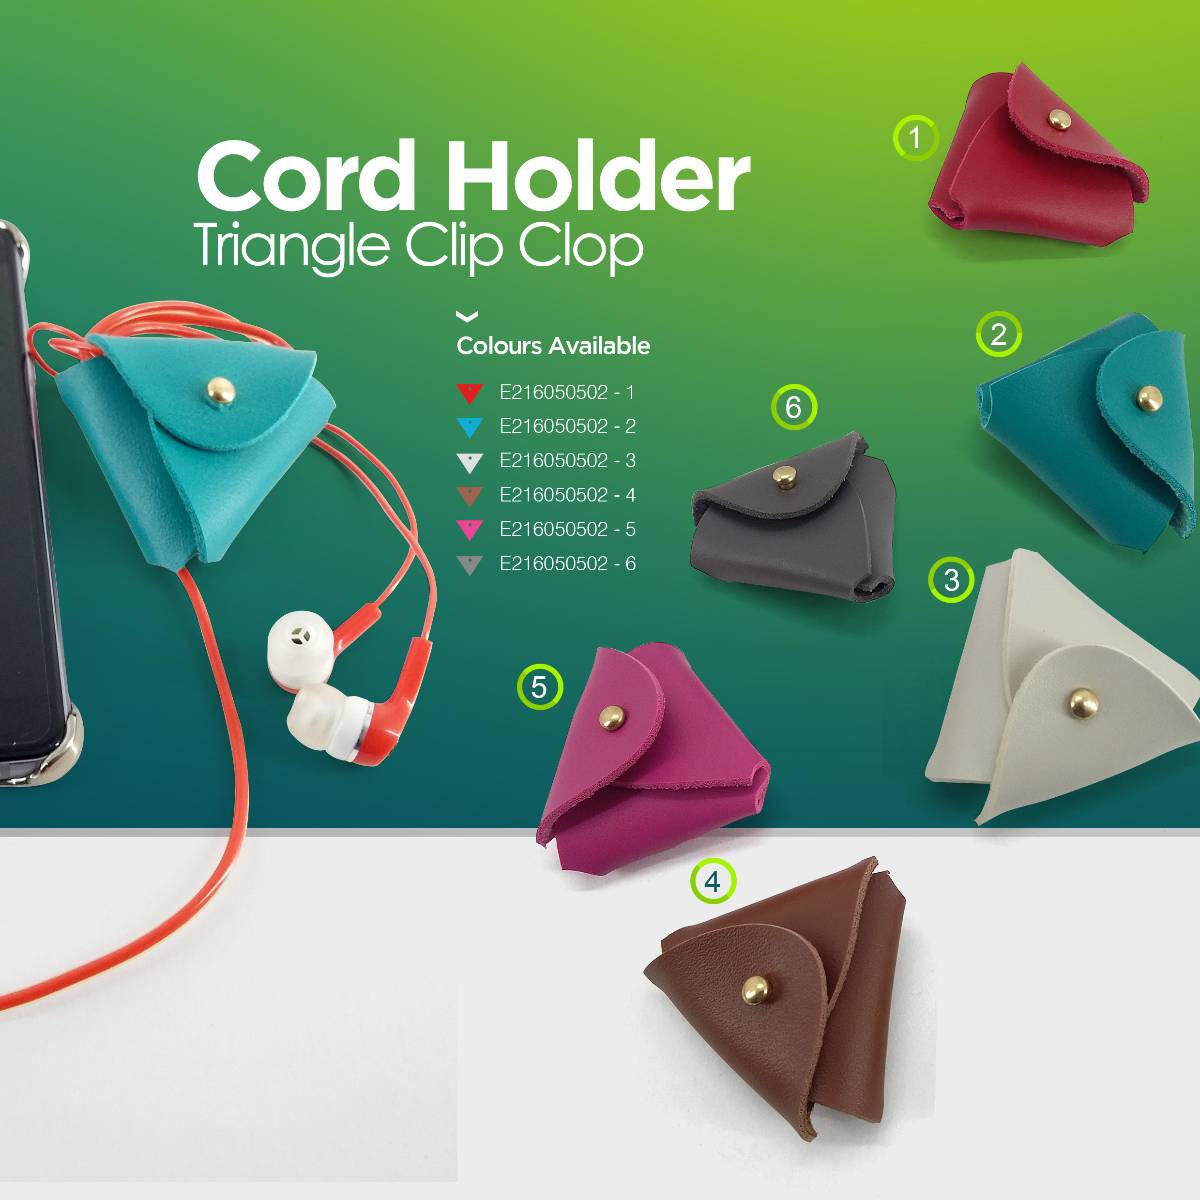 Cord Holder Triangle Laris Manis Syulie Shop Outletz Aseptic Jel Plus Dispenser Triangle0